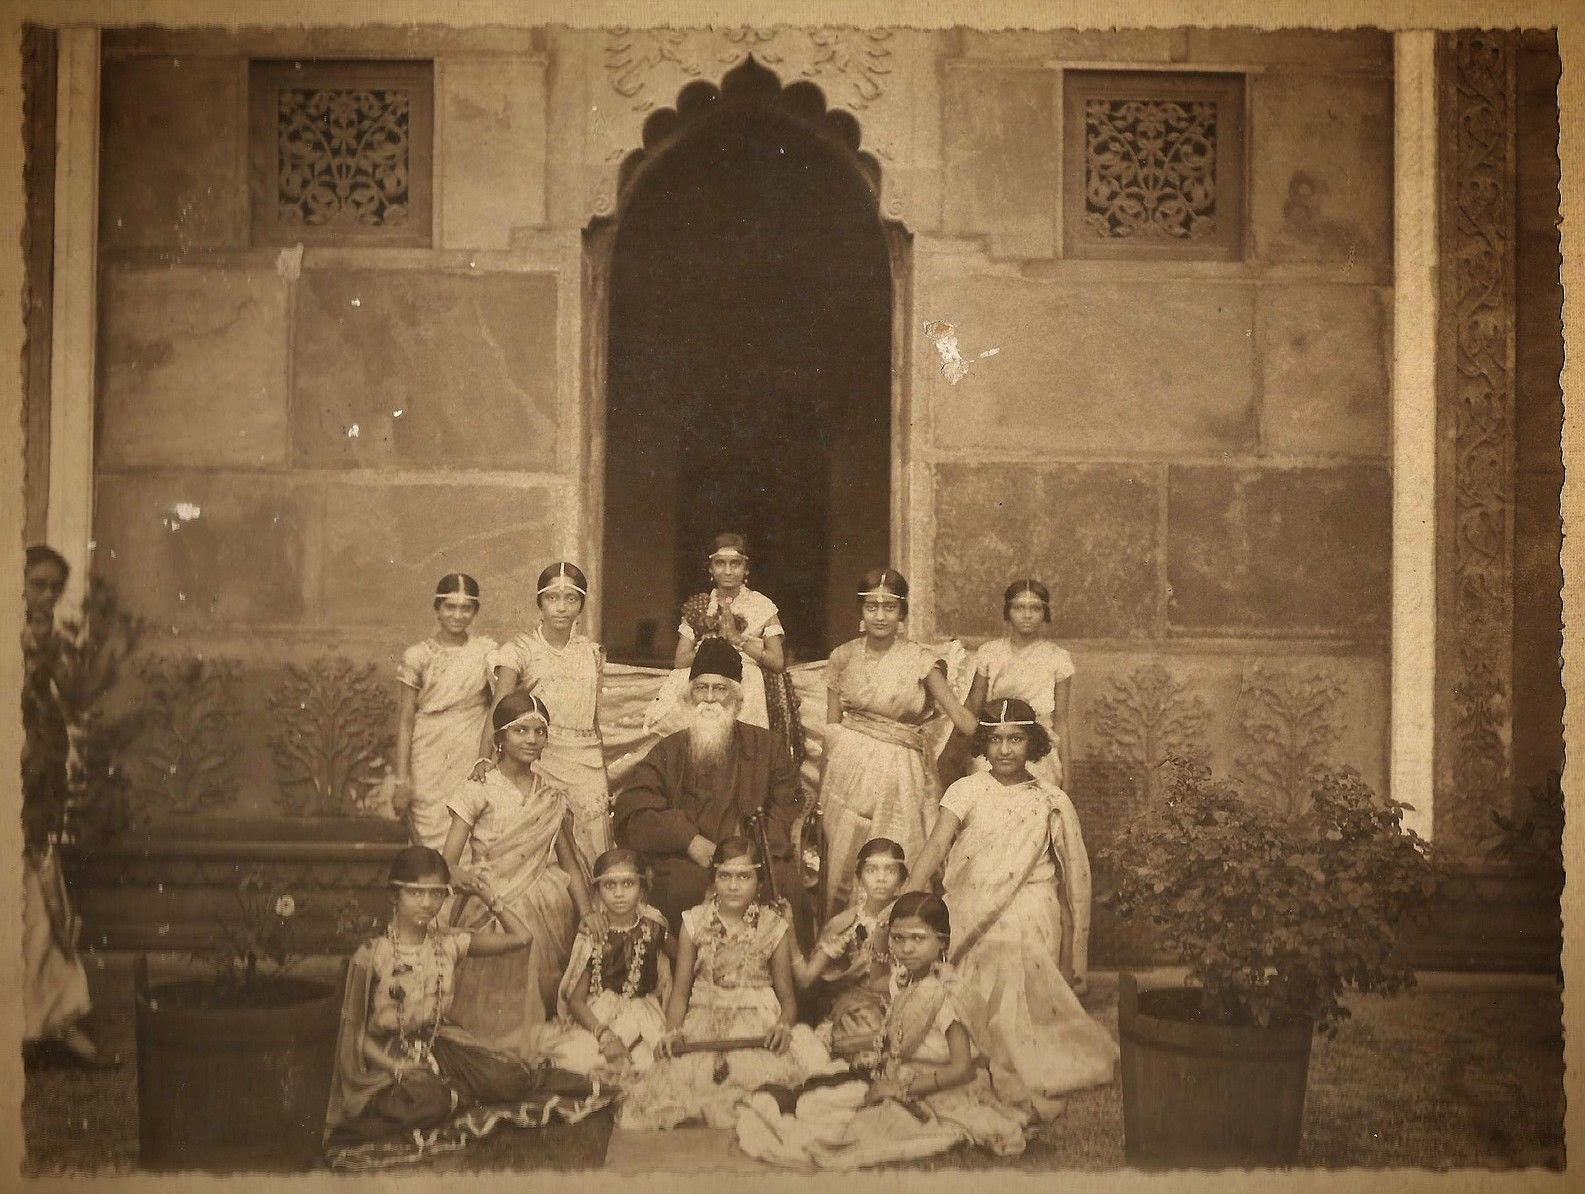 Rabindranath Tagore with Group of Girls in Costume for a Drama Performance